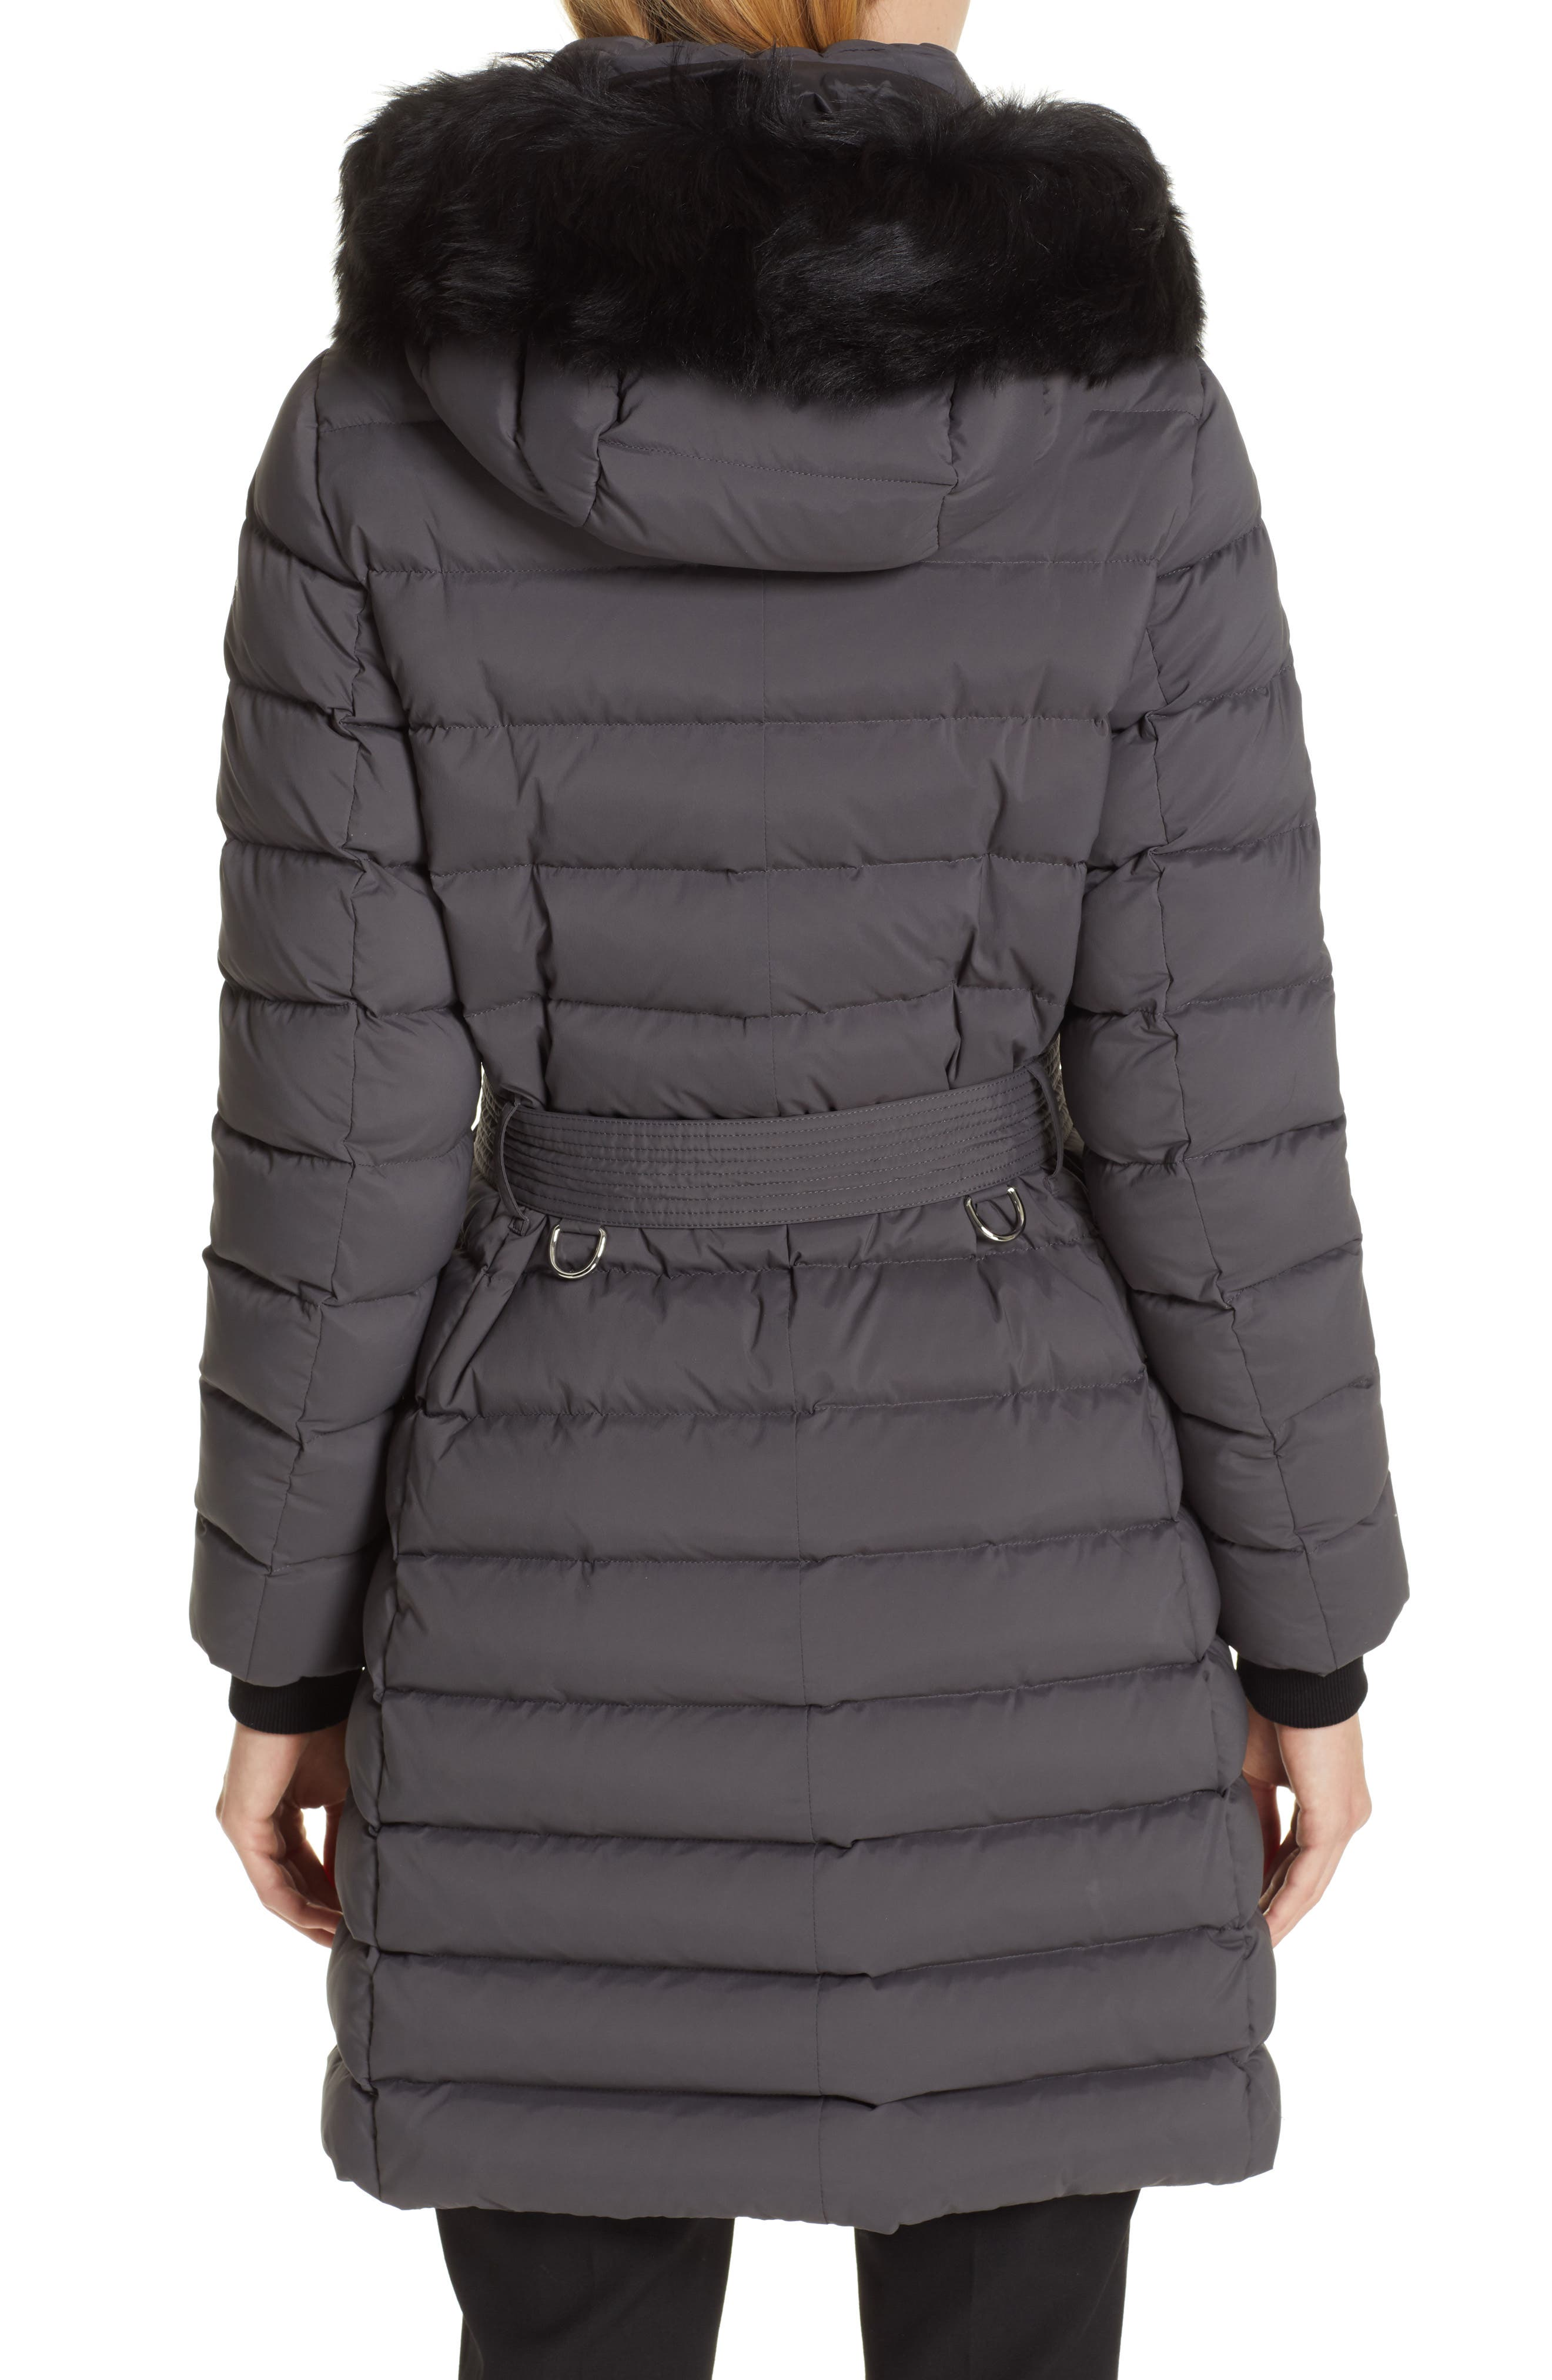 Limehouse Quilted Down Puffer Coat with Removable Genuine Shearling Trim,                             Alternate thumbnail 3, color,                             MID GREY